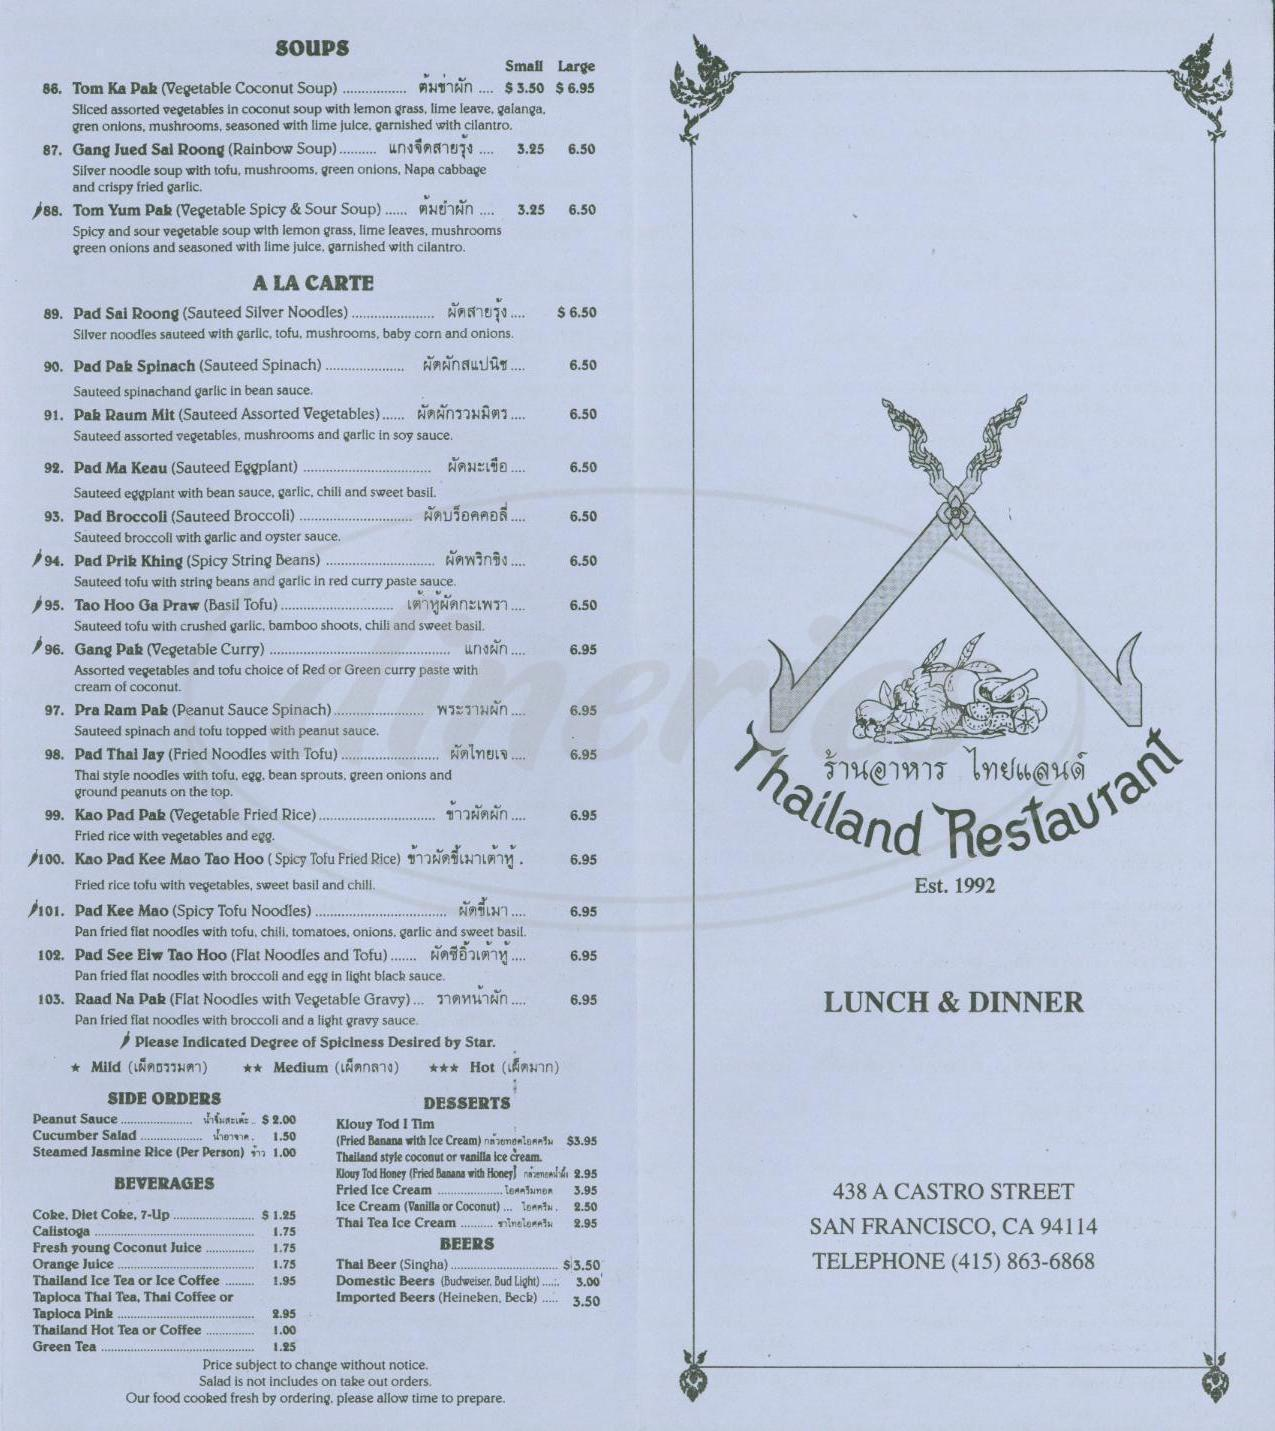 menu for Thailand Restaurant